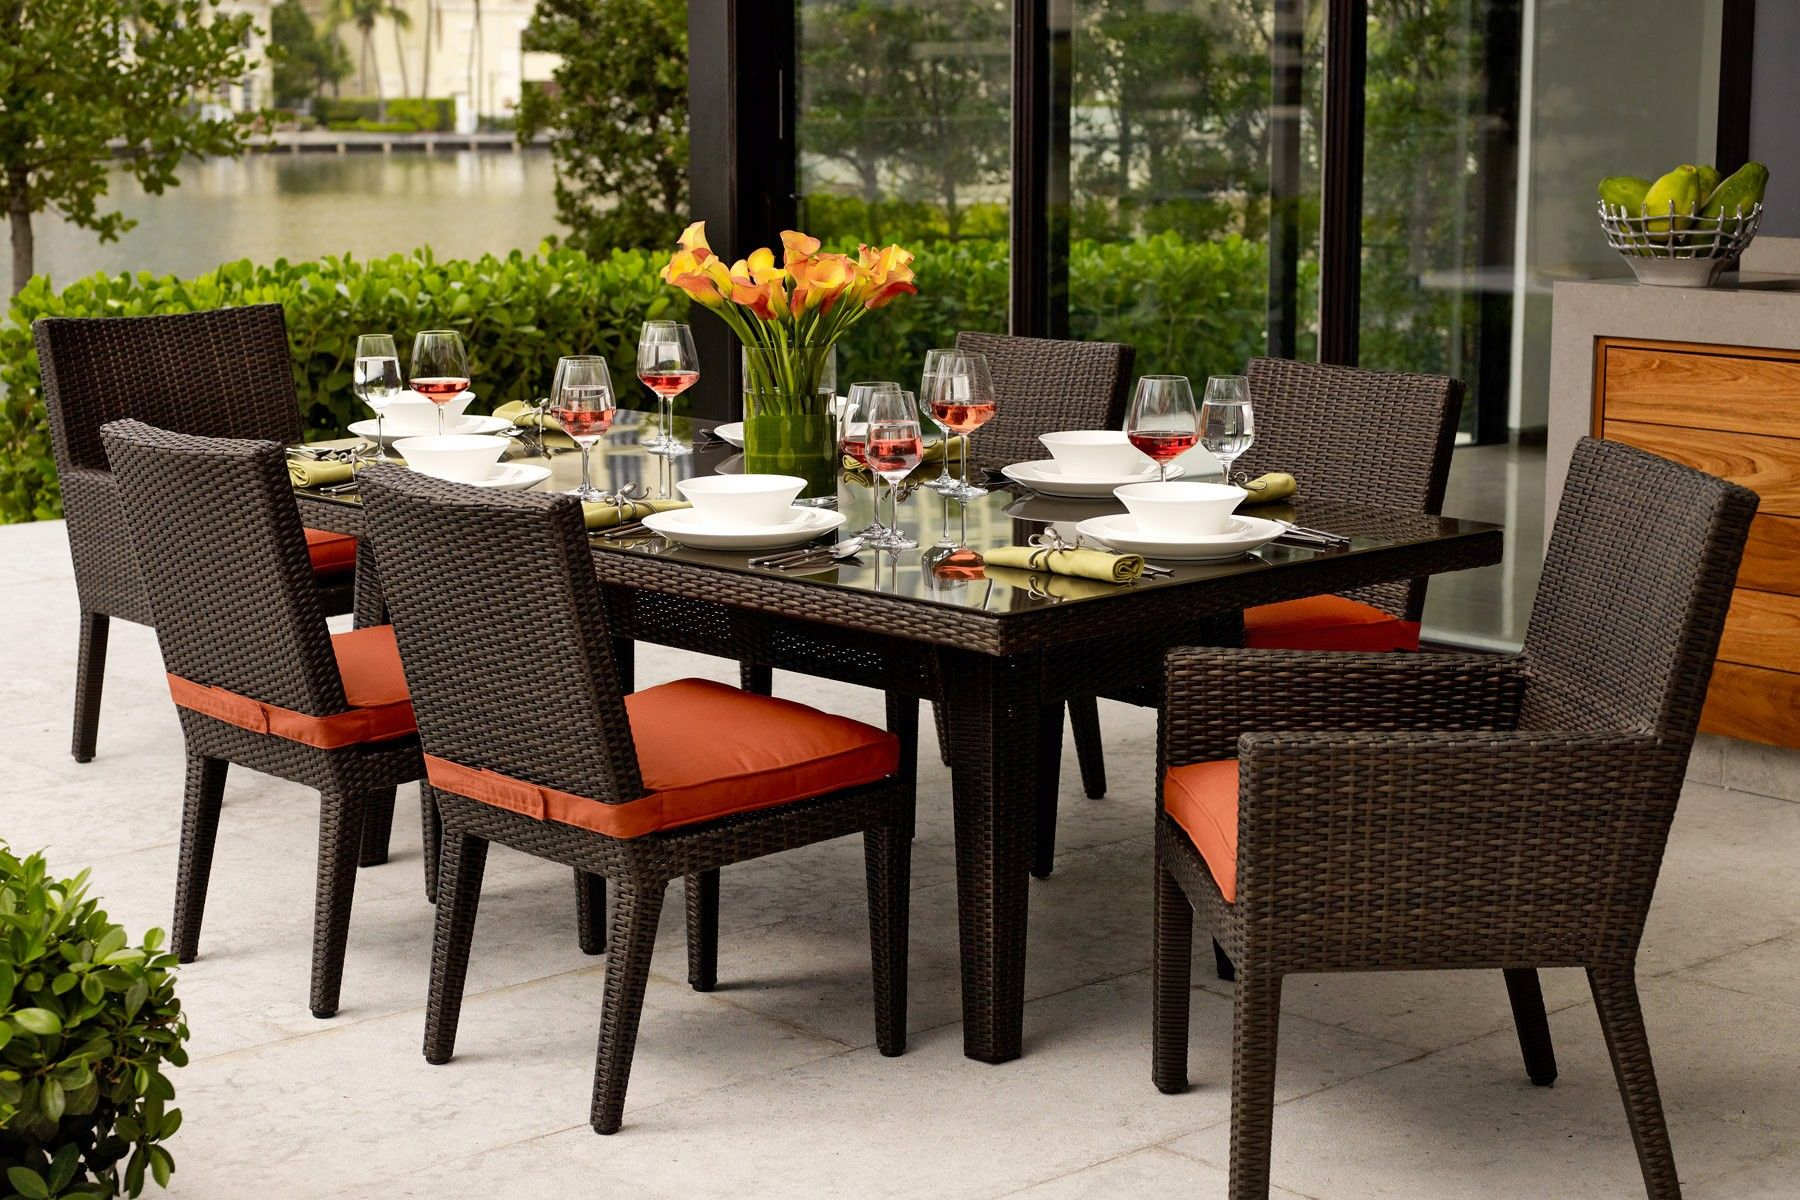 Patio Furniture image by Sandy Dunning Patio furniture